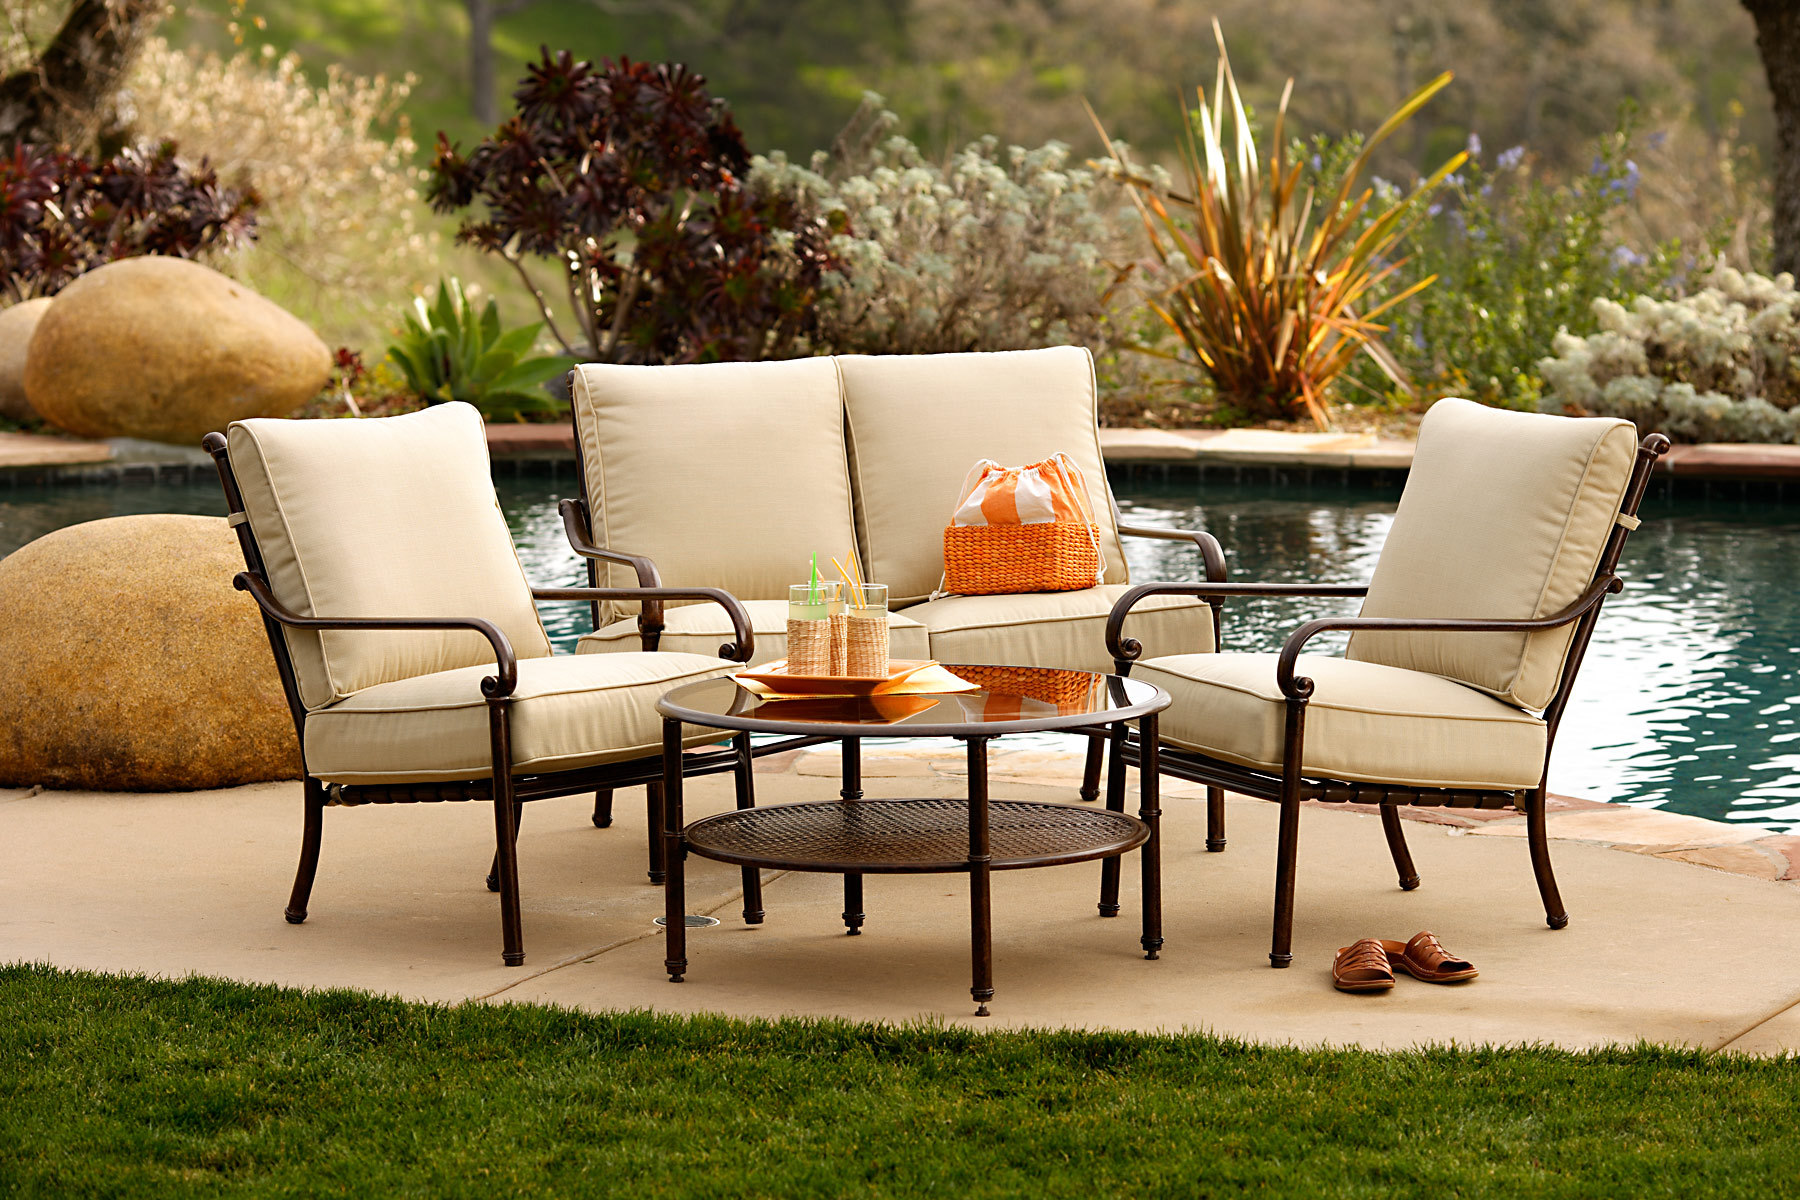 Small patio furniture eva furniture Metal garden furniture sets